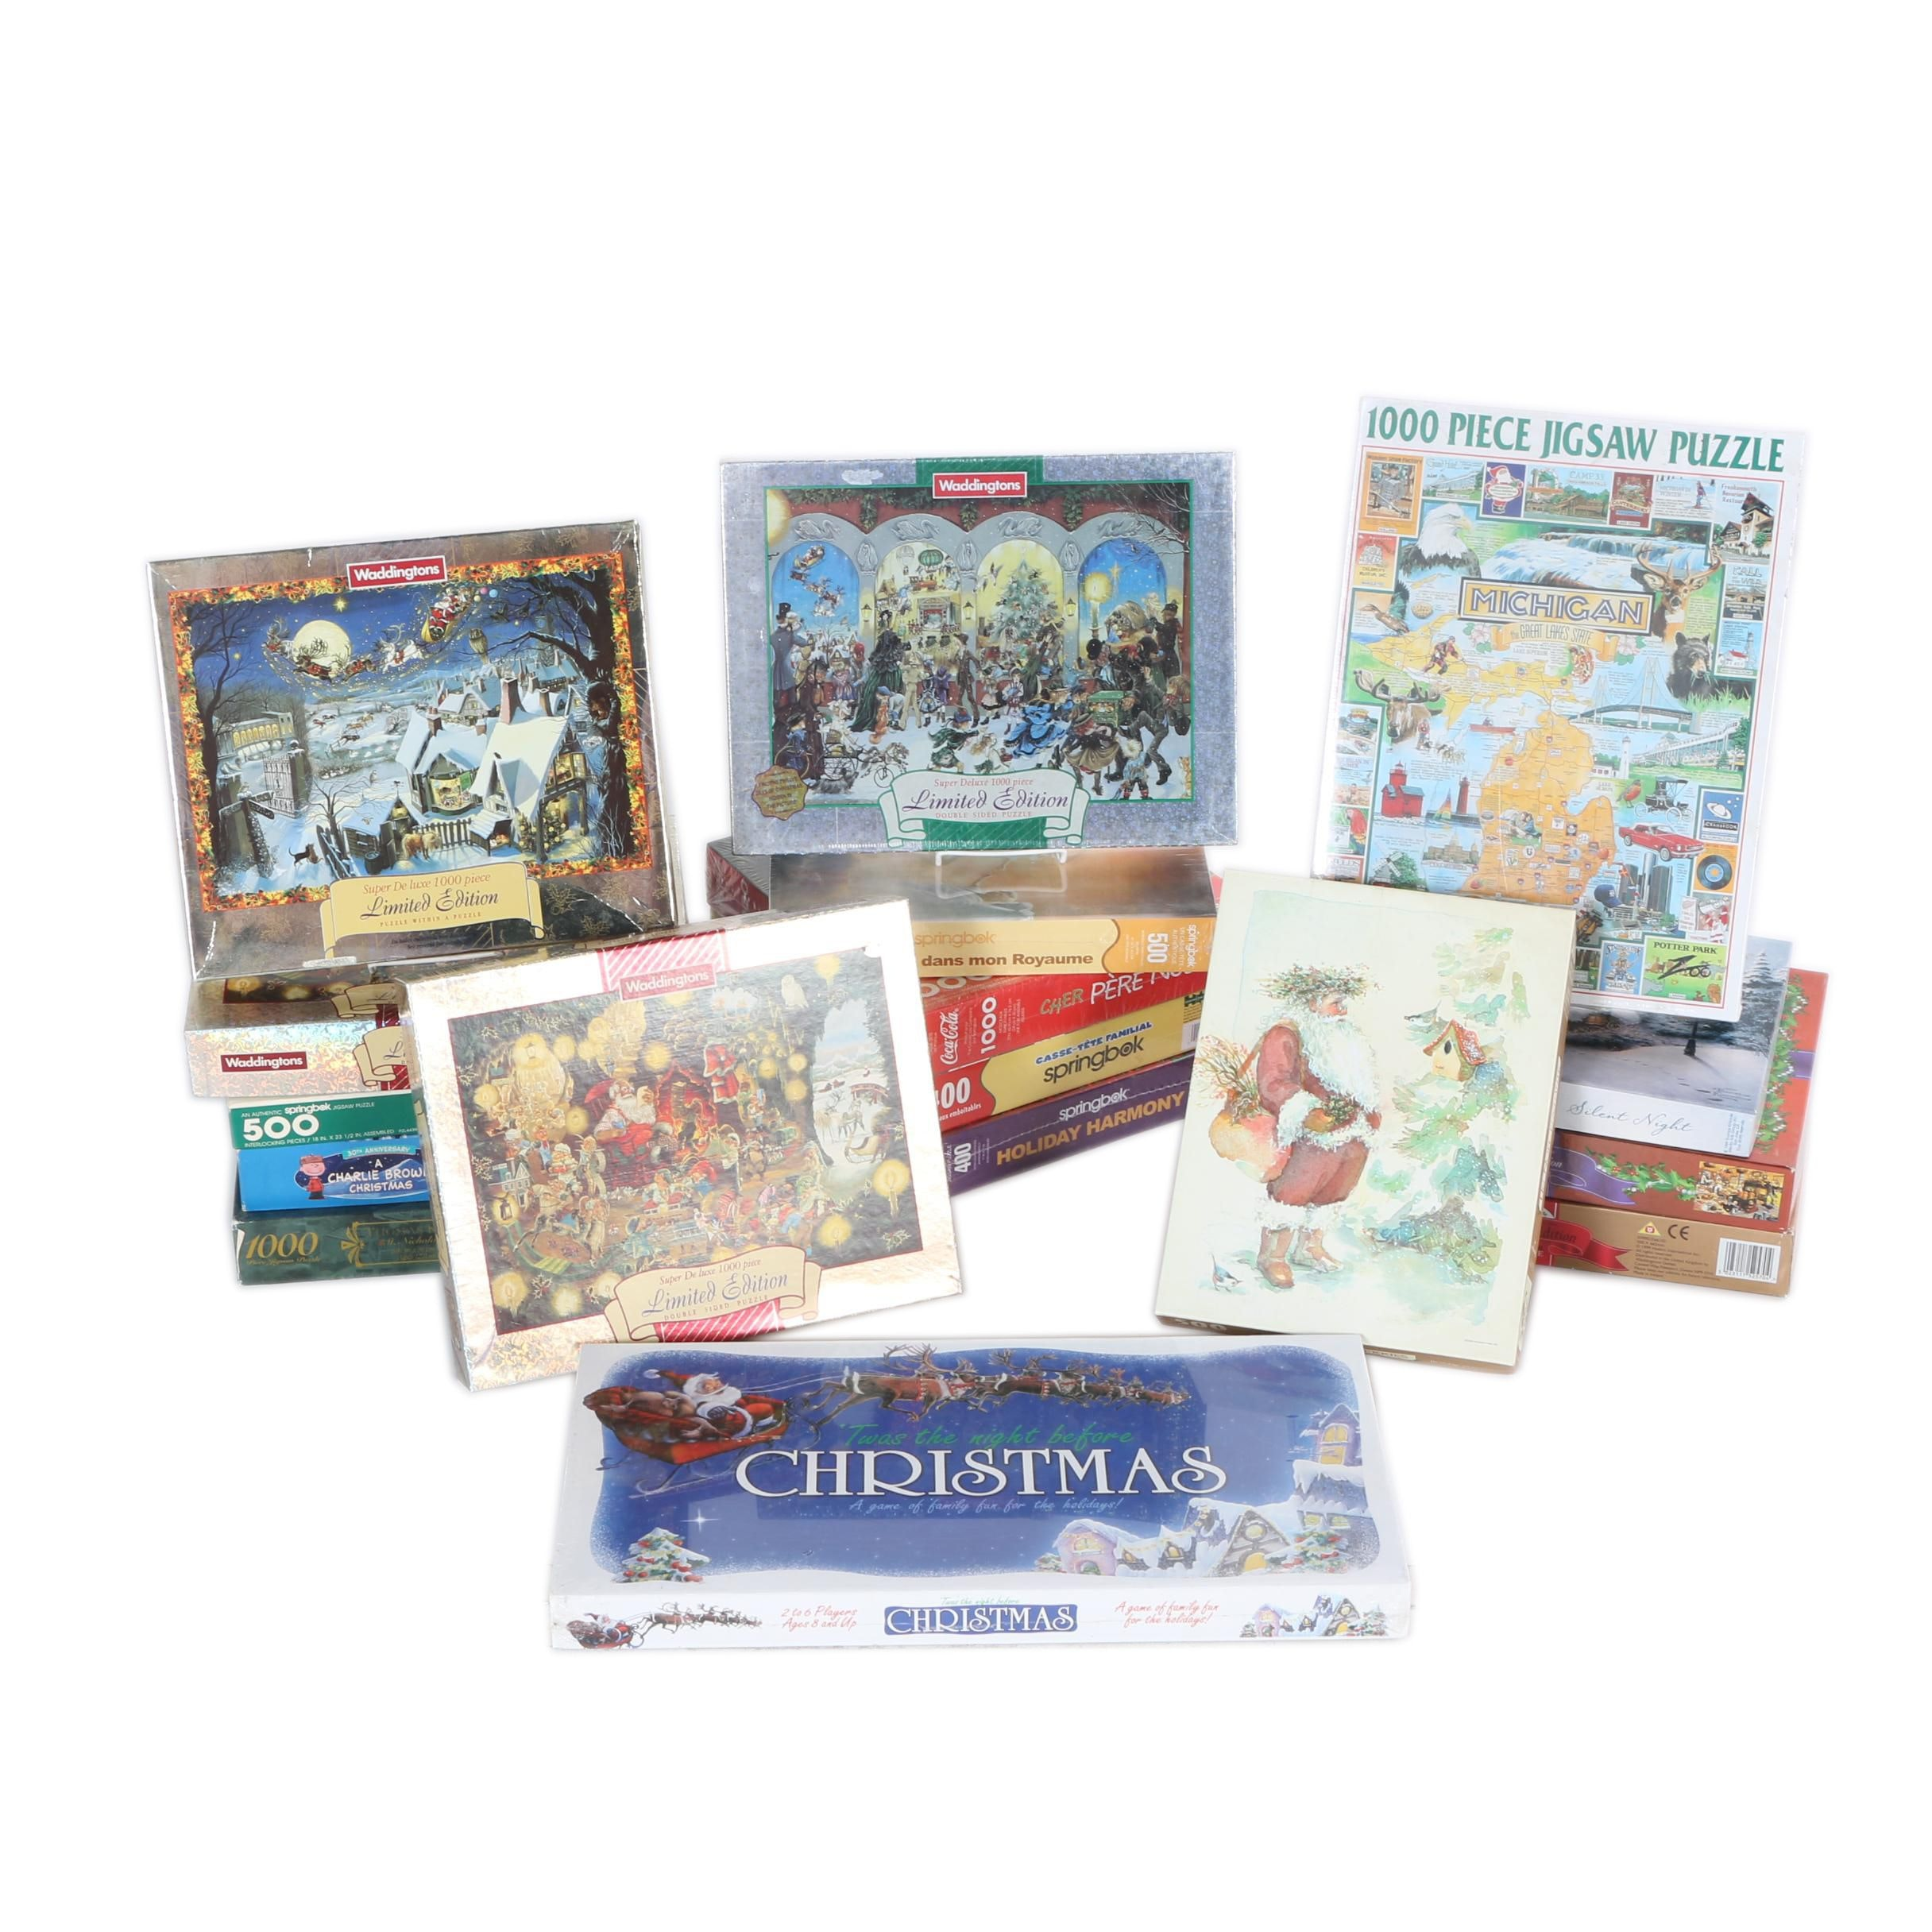 Collection of Holiday-Themed Puzzles